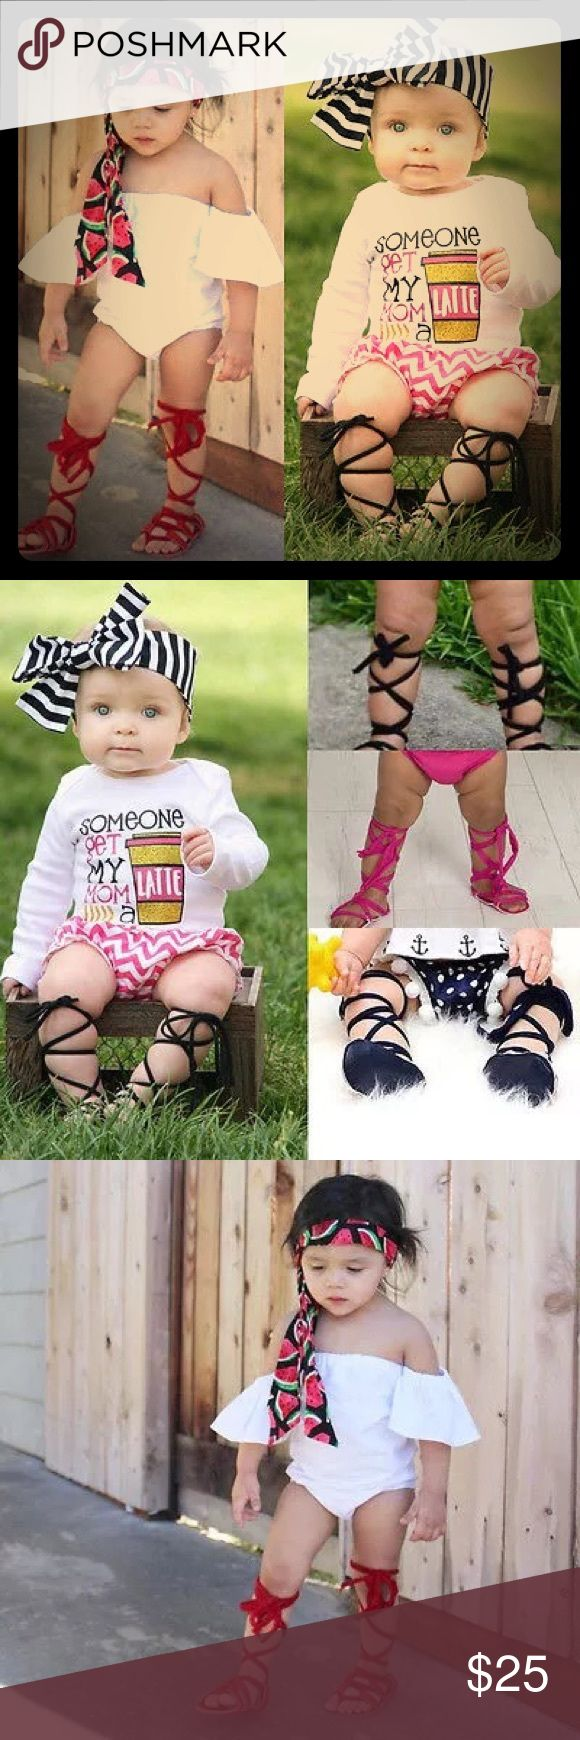 SALE🎉Boho gladiator sandals Adorable new gladiator sandals! 😝💕 These are the cutest pink boho sandals! Size 6-12 months, soft rubber soles, and ties with soft cotton for a comfortable fit!🎉😍 Check out my other listing for other cutie boho lols! Bundle and save! 😉👍🏻 Shoes